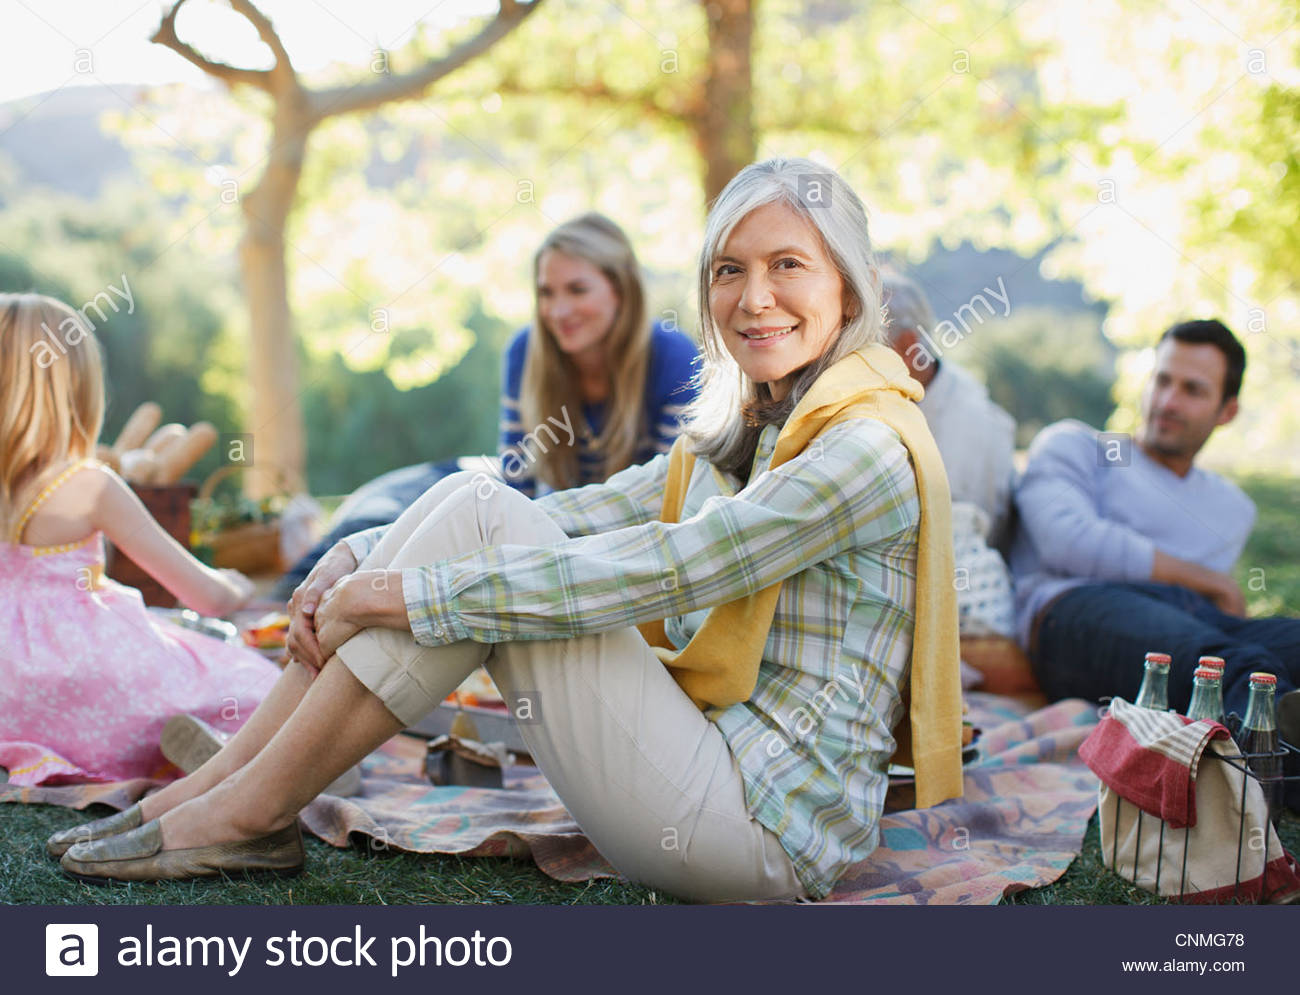 Family picnicking together outdoors - Stock Image